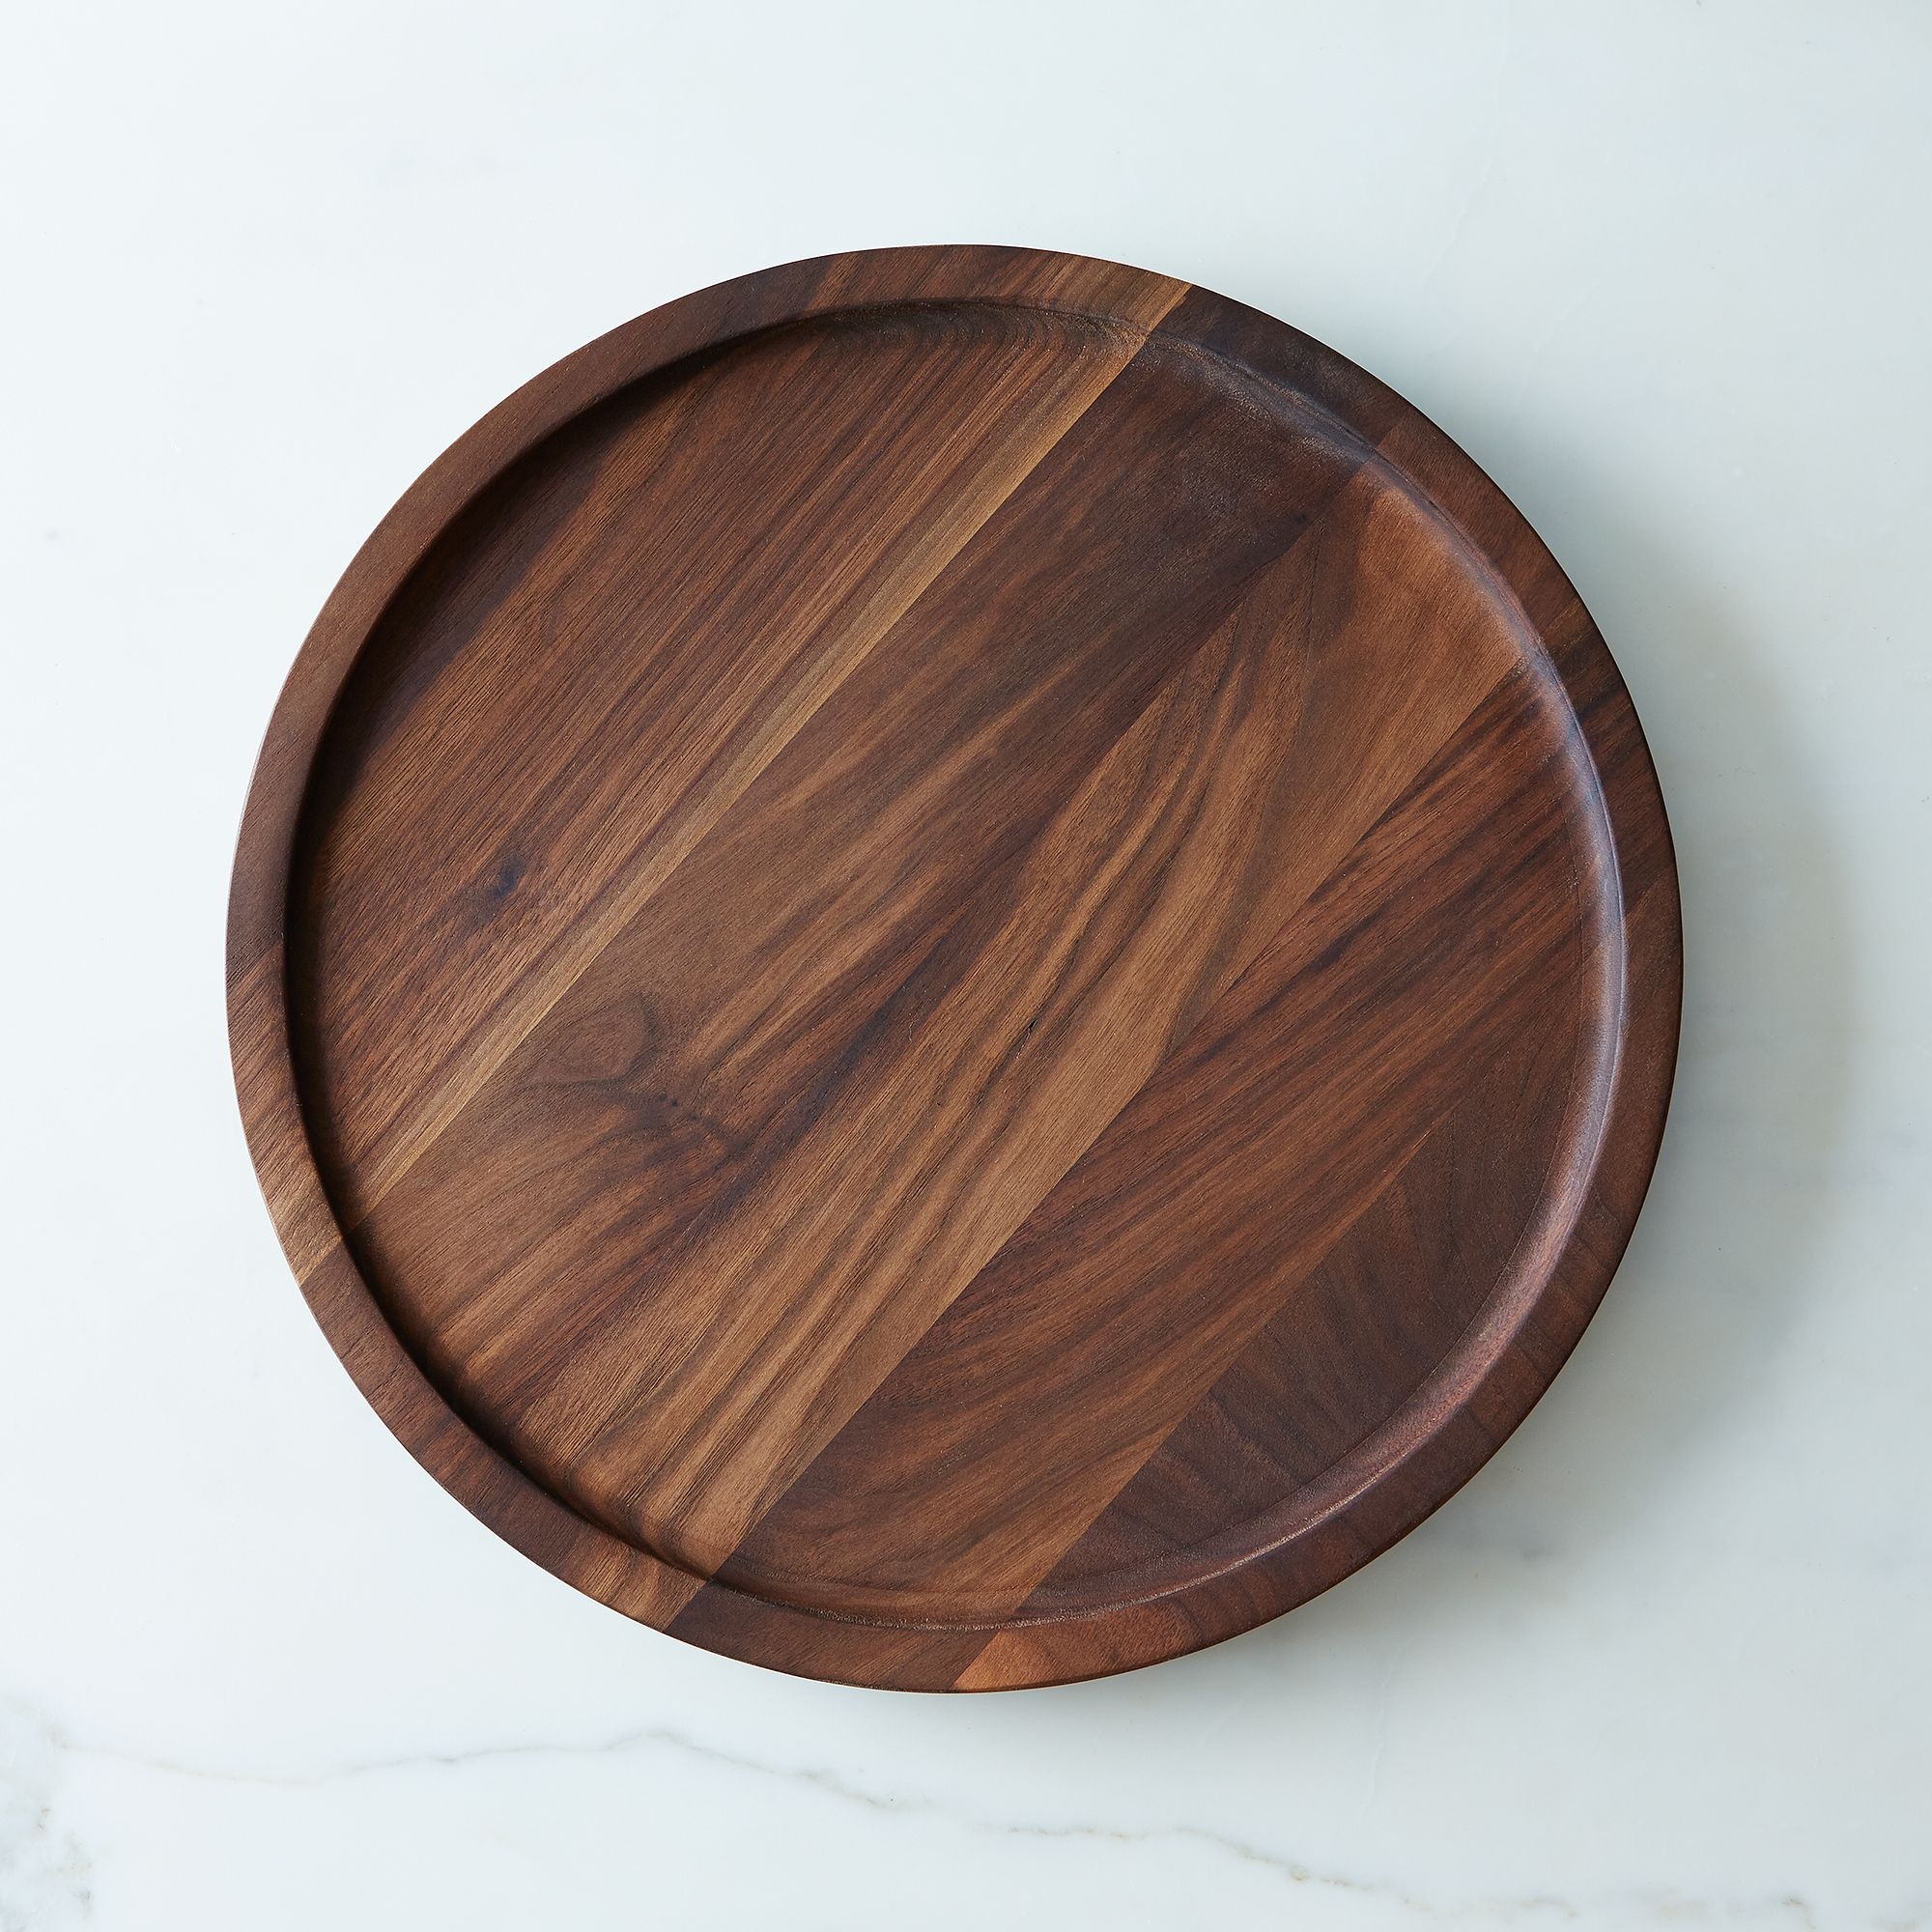 81e836a4 a0f6 11e5 a190 0ef7535729df  brooklyn handicraft lazy susan walnut provisions mark weinberg 30 06 14 0116 silo